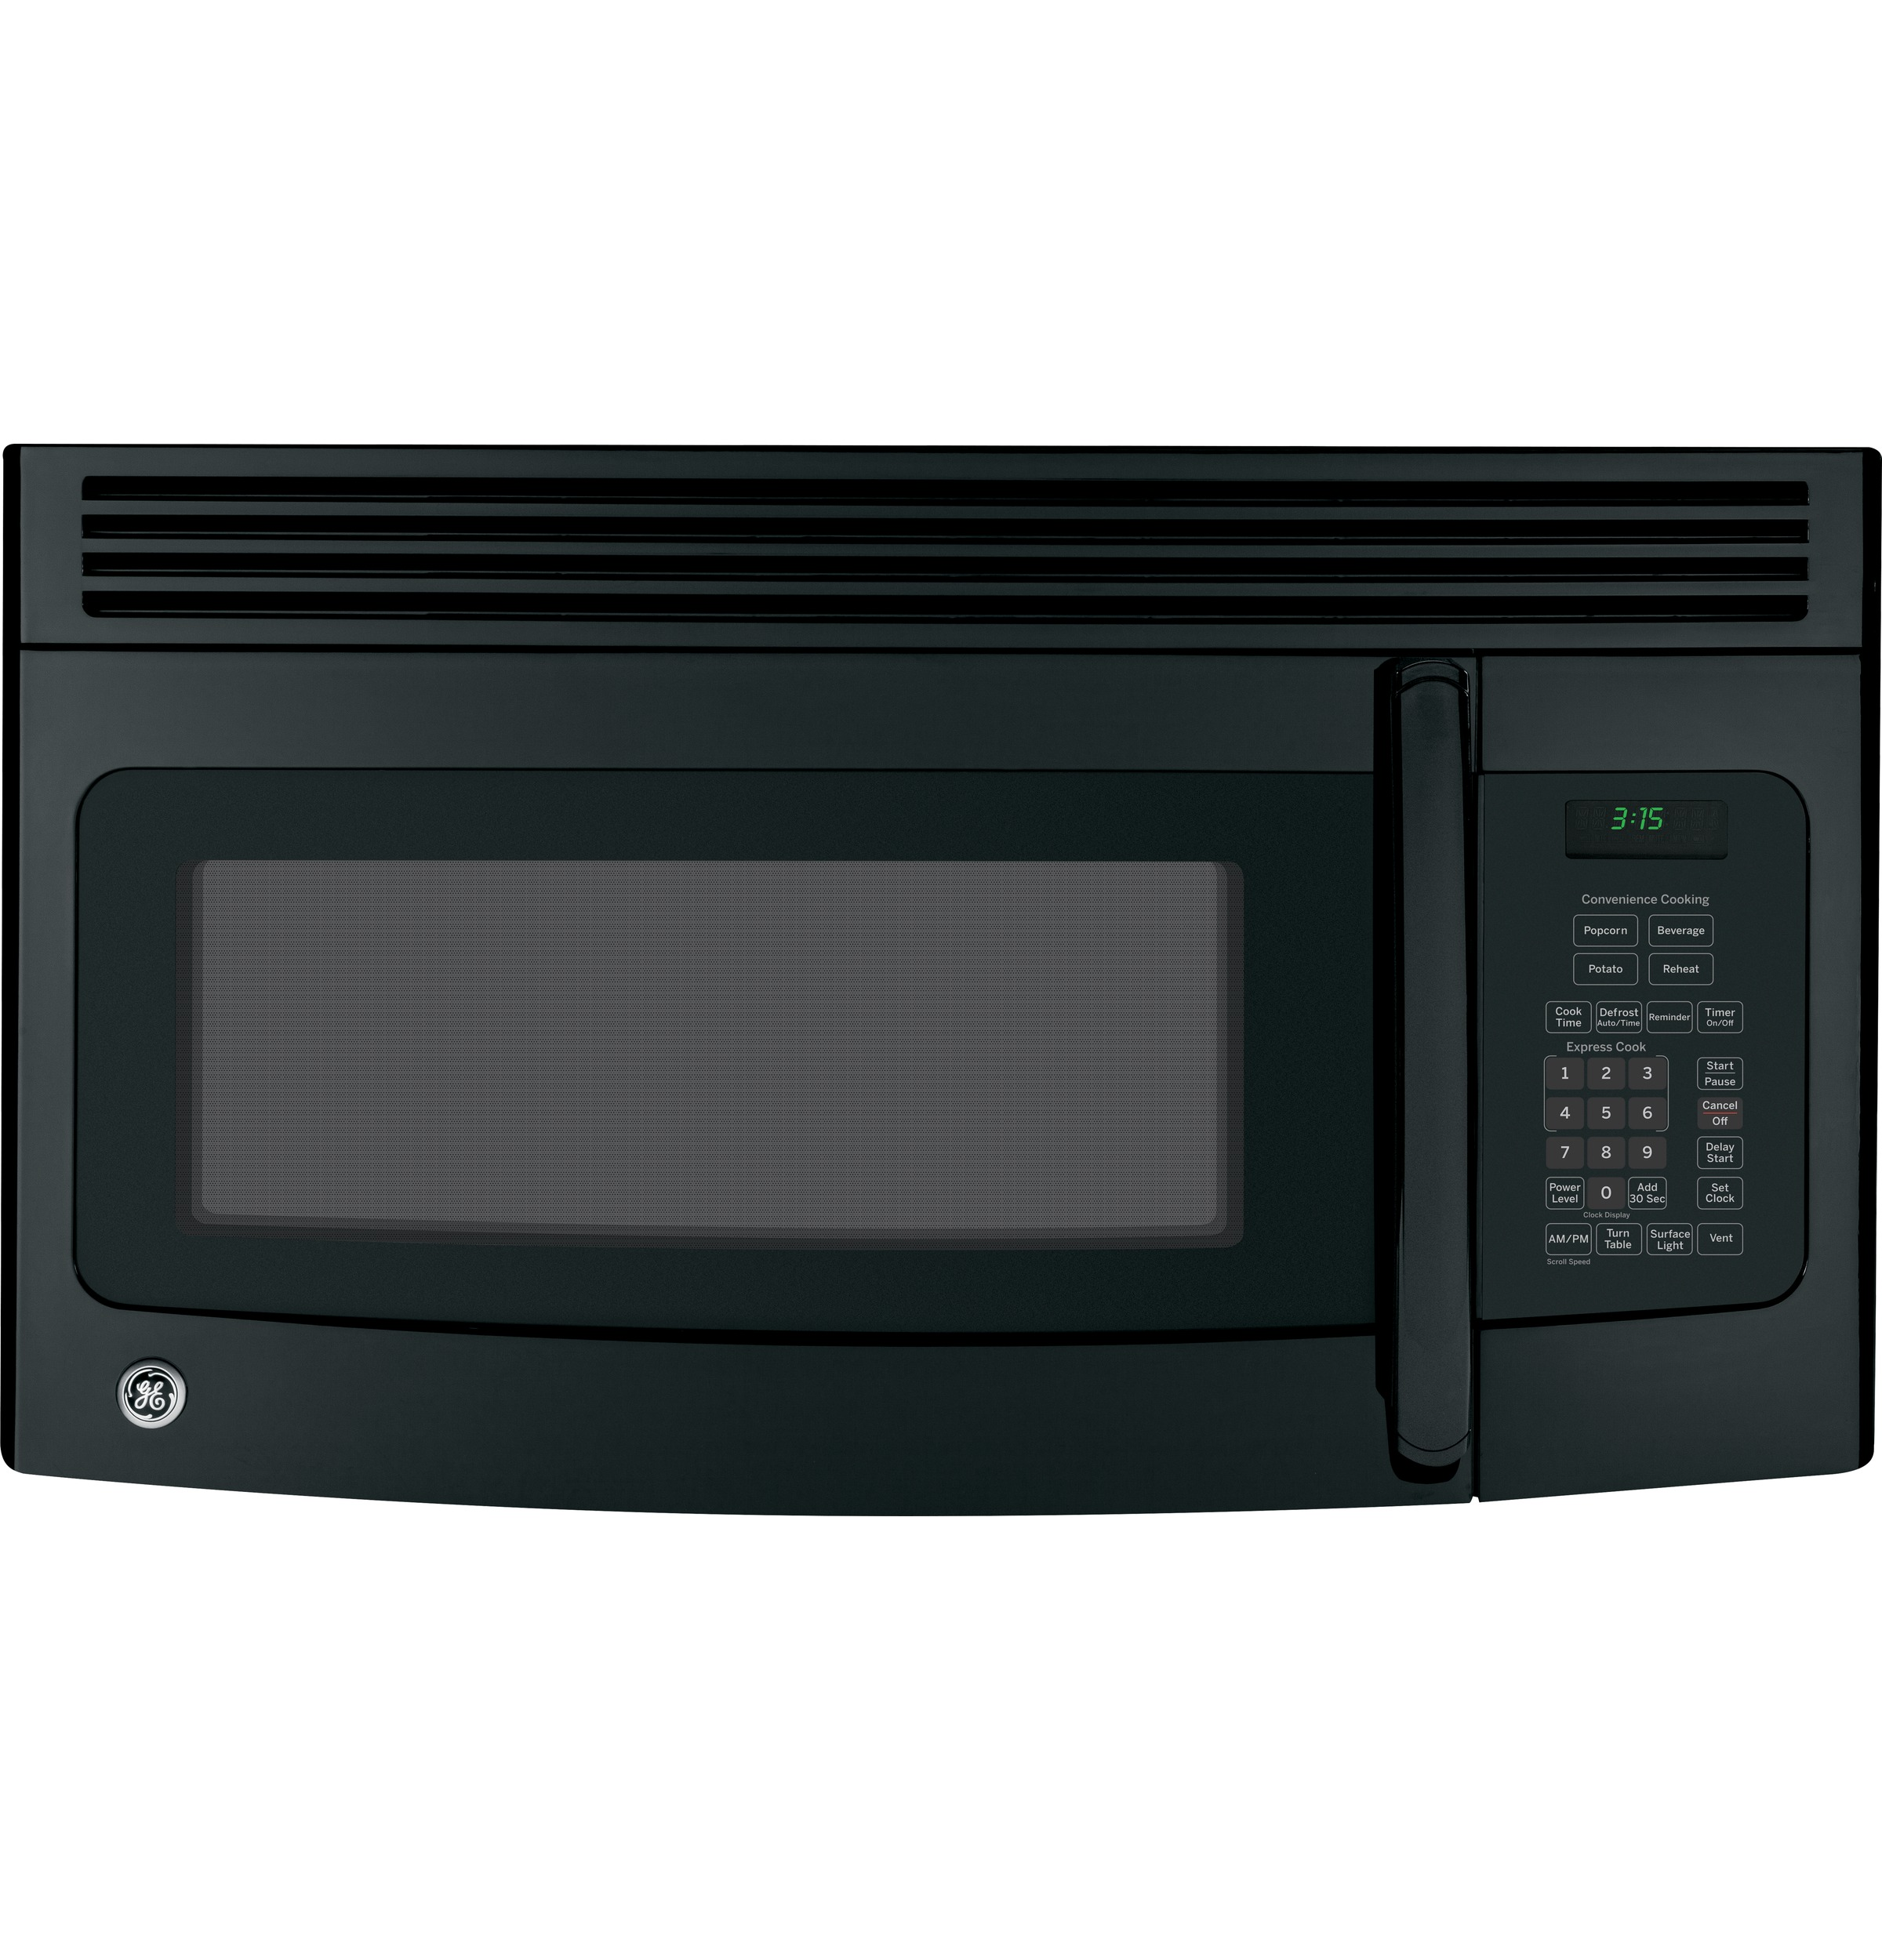 Best Otr Microwave Oven: GE® 1.5 Cu. Ft. Over-the-Range Microwave Oven With